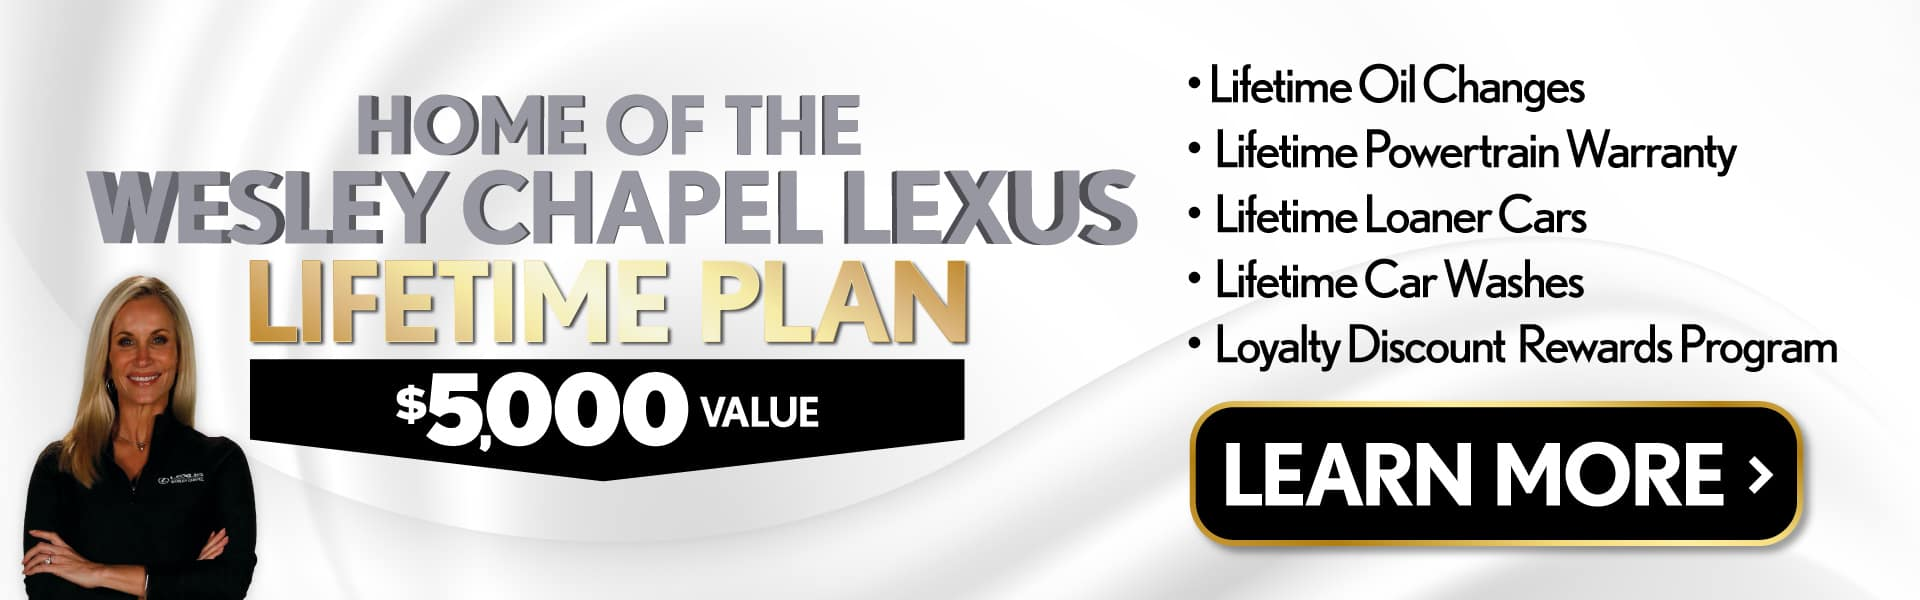 Home of the Wesley Chapel Lexus Lifetime Plan | Learn More